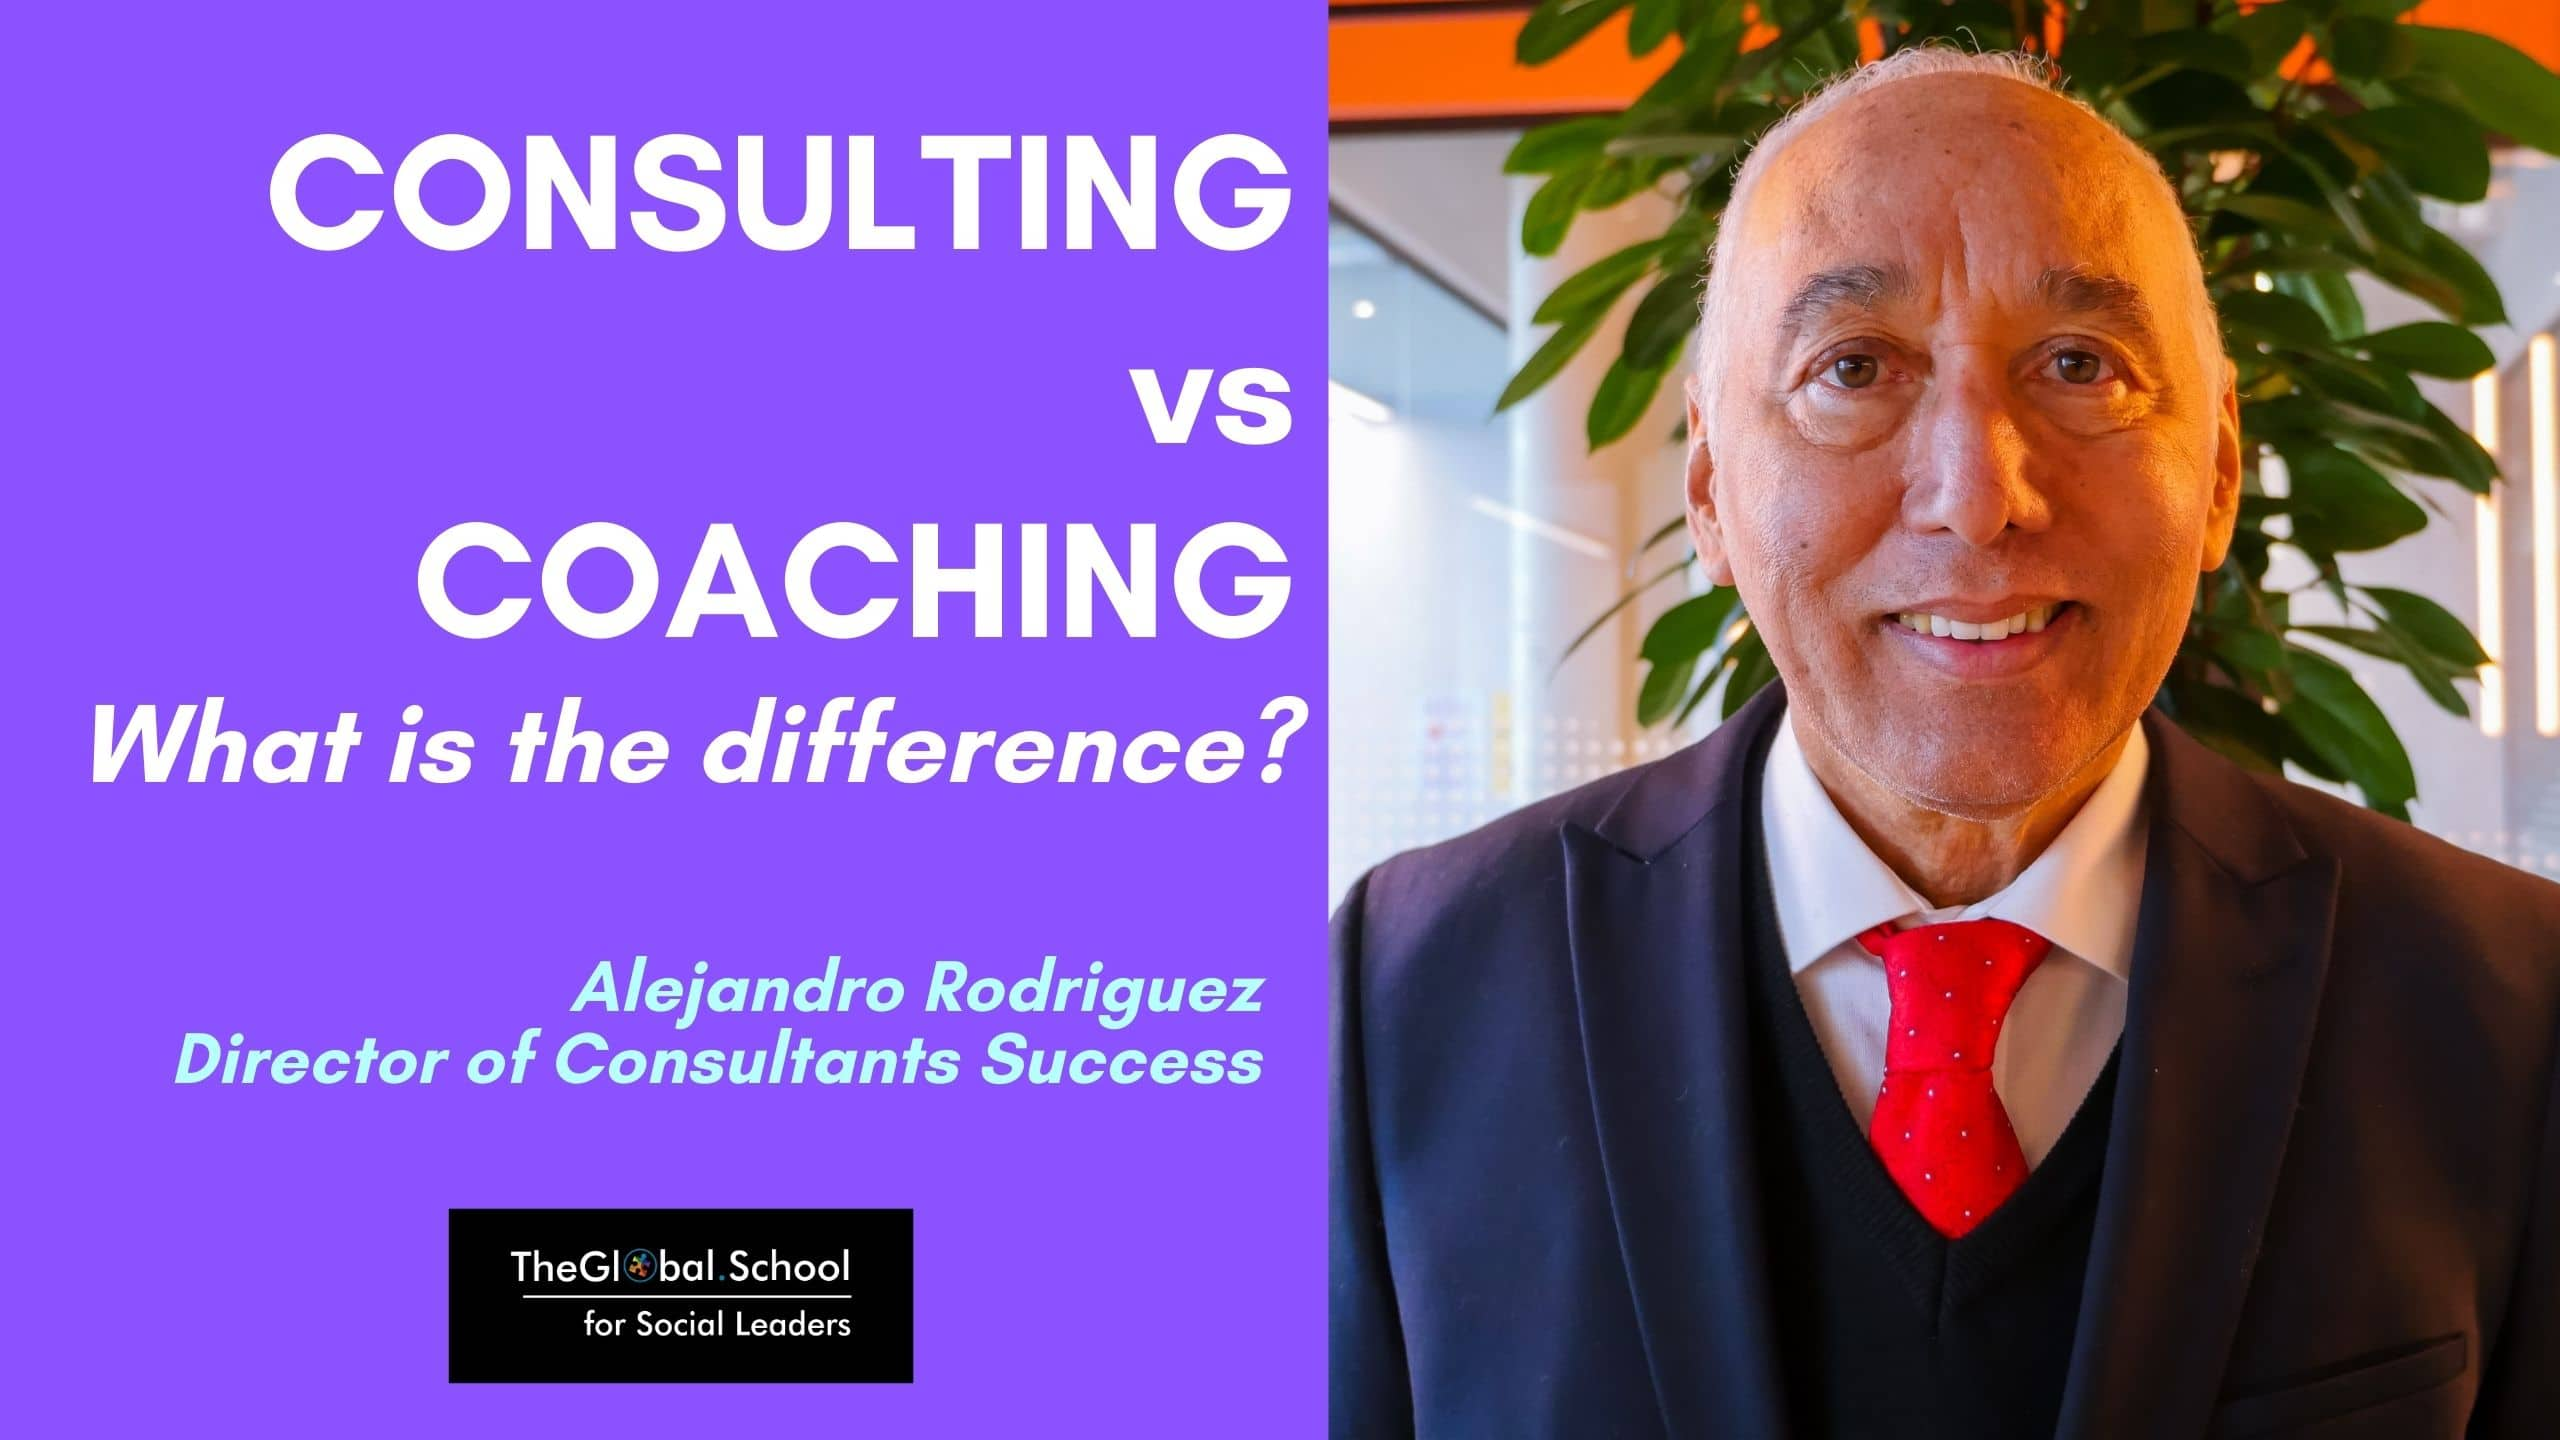 Consulting vs Coaching. Difference.